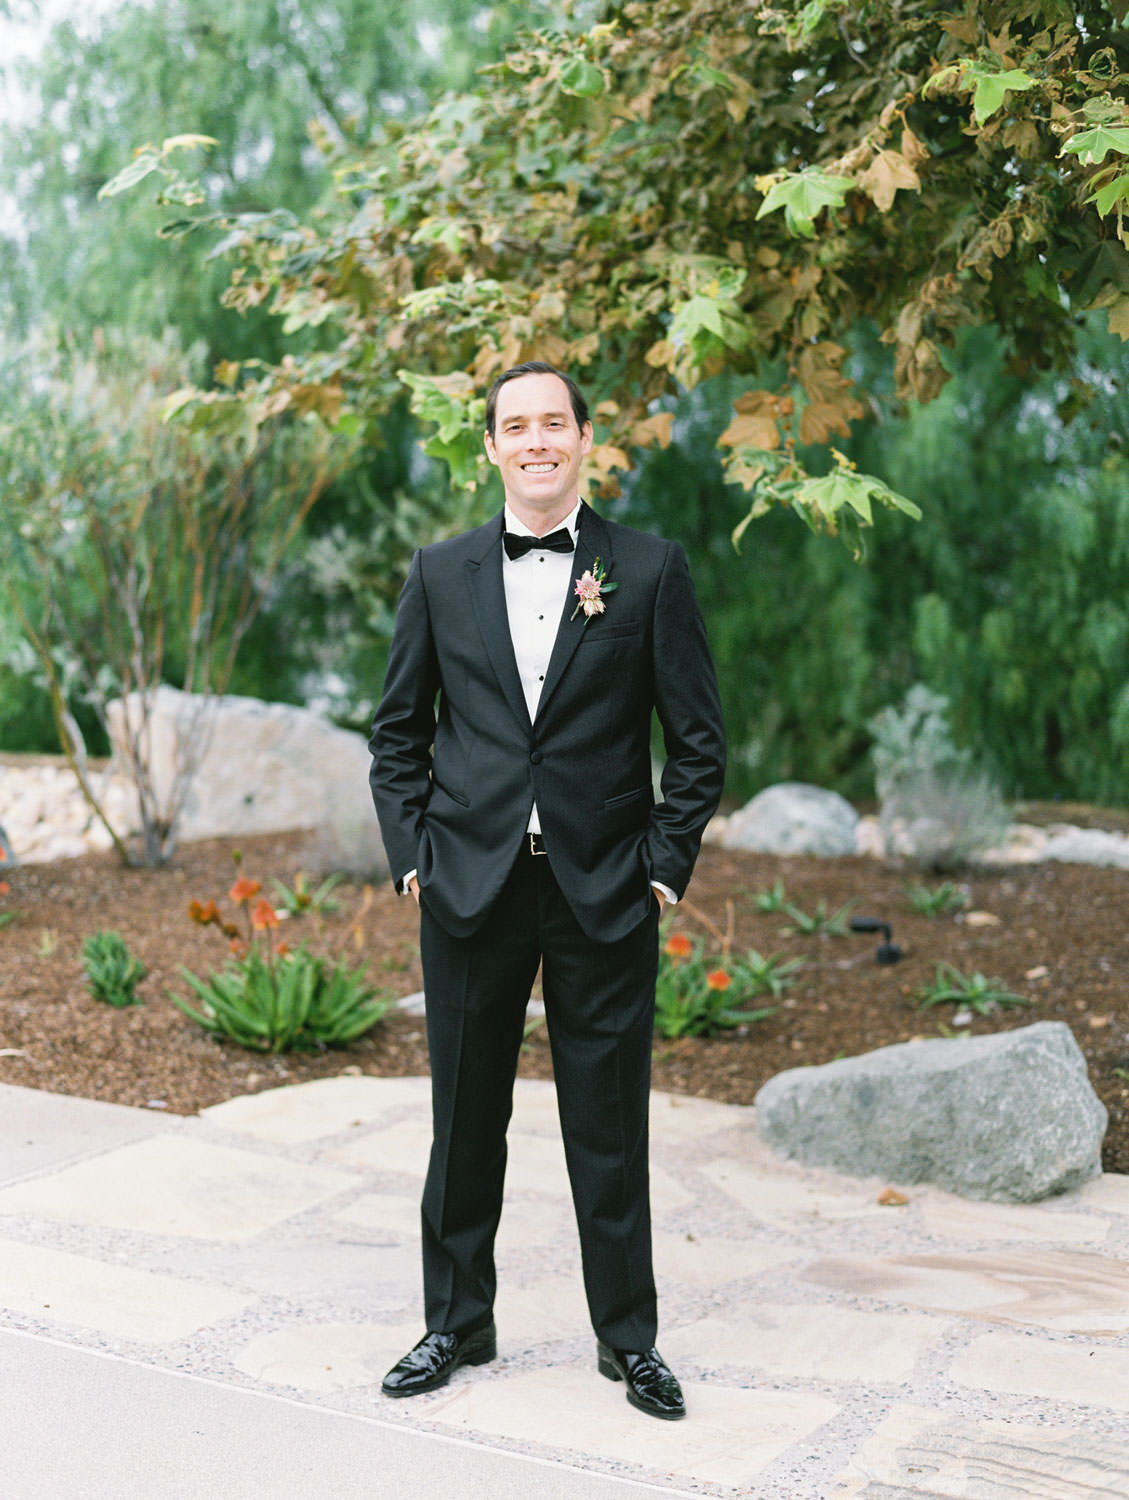 Groom in black tux at Green Acre Campus Pointe Wedding, film photo by Cavin Elizabeth Photography